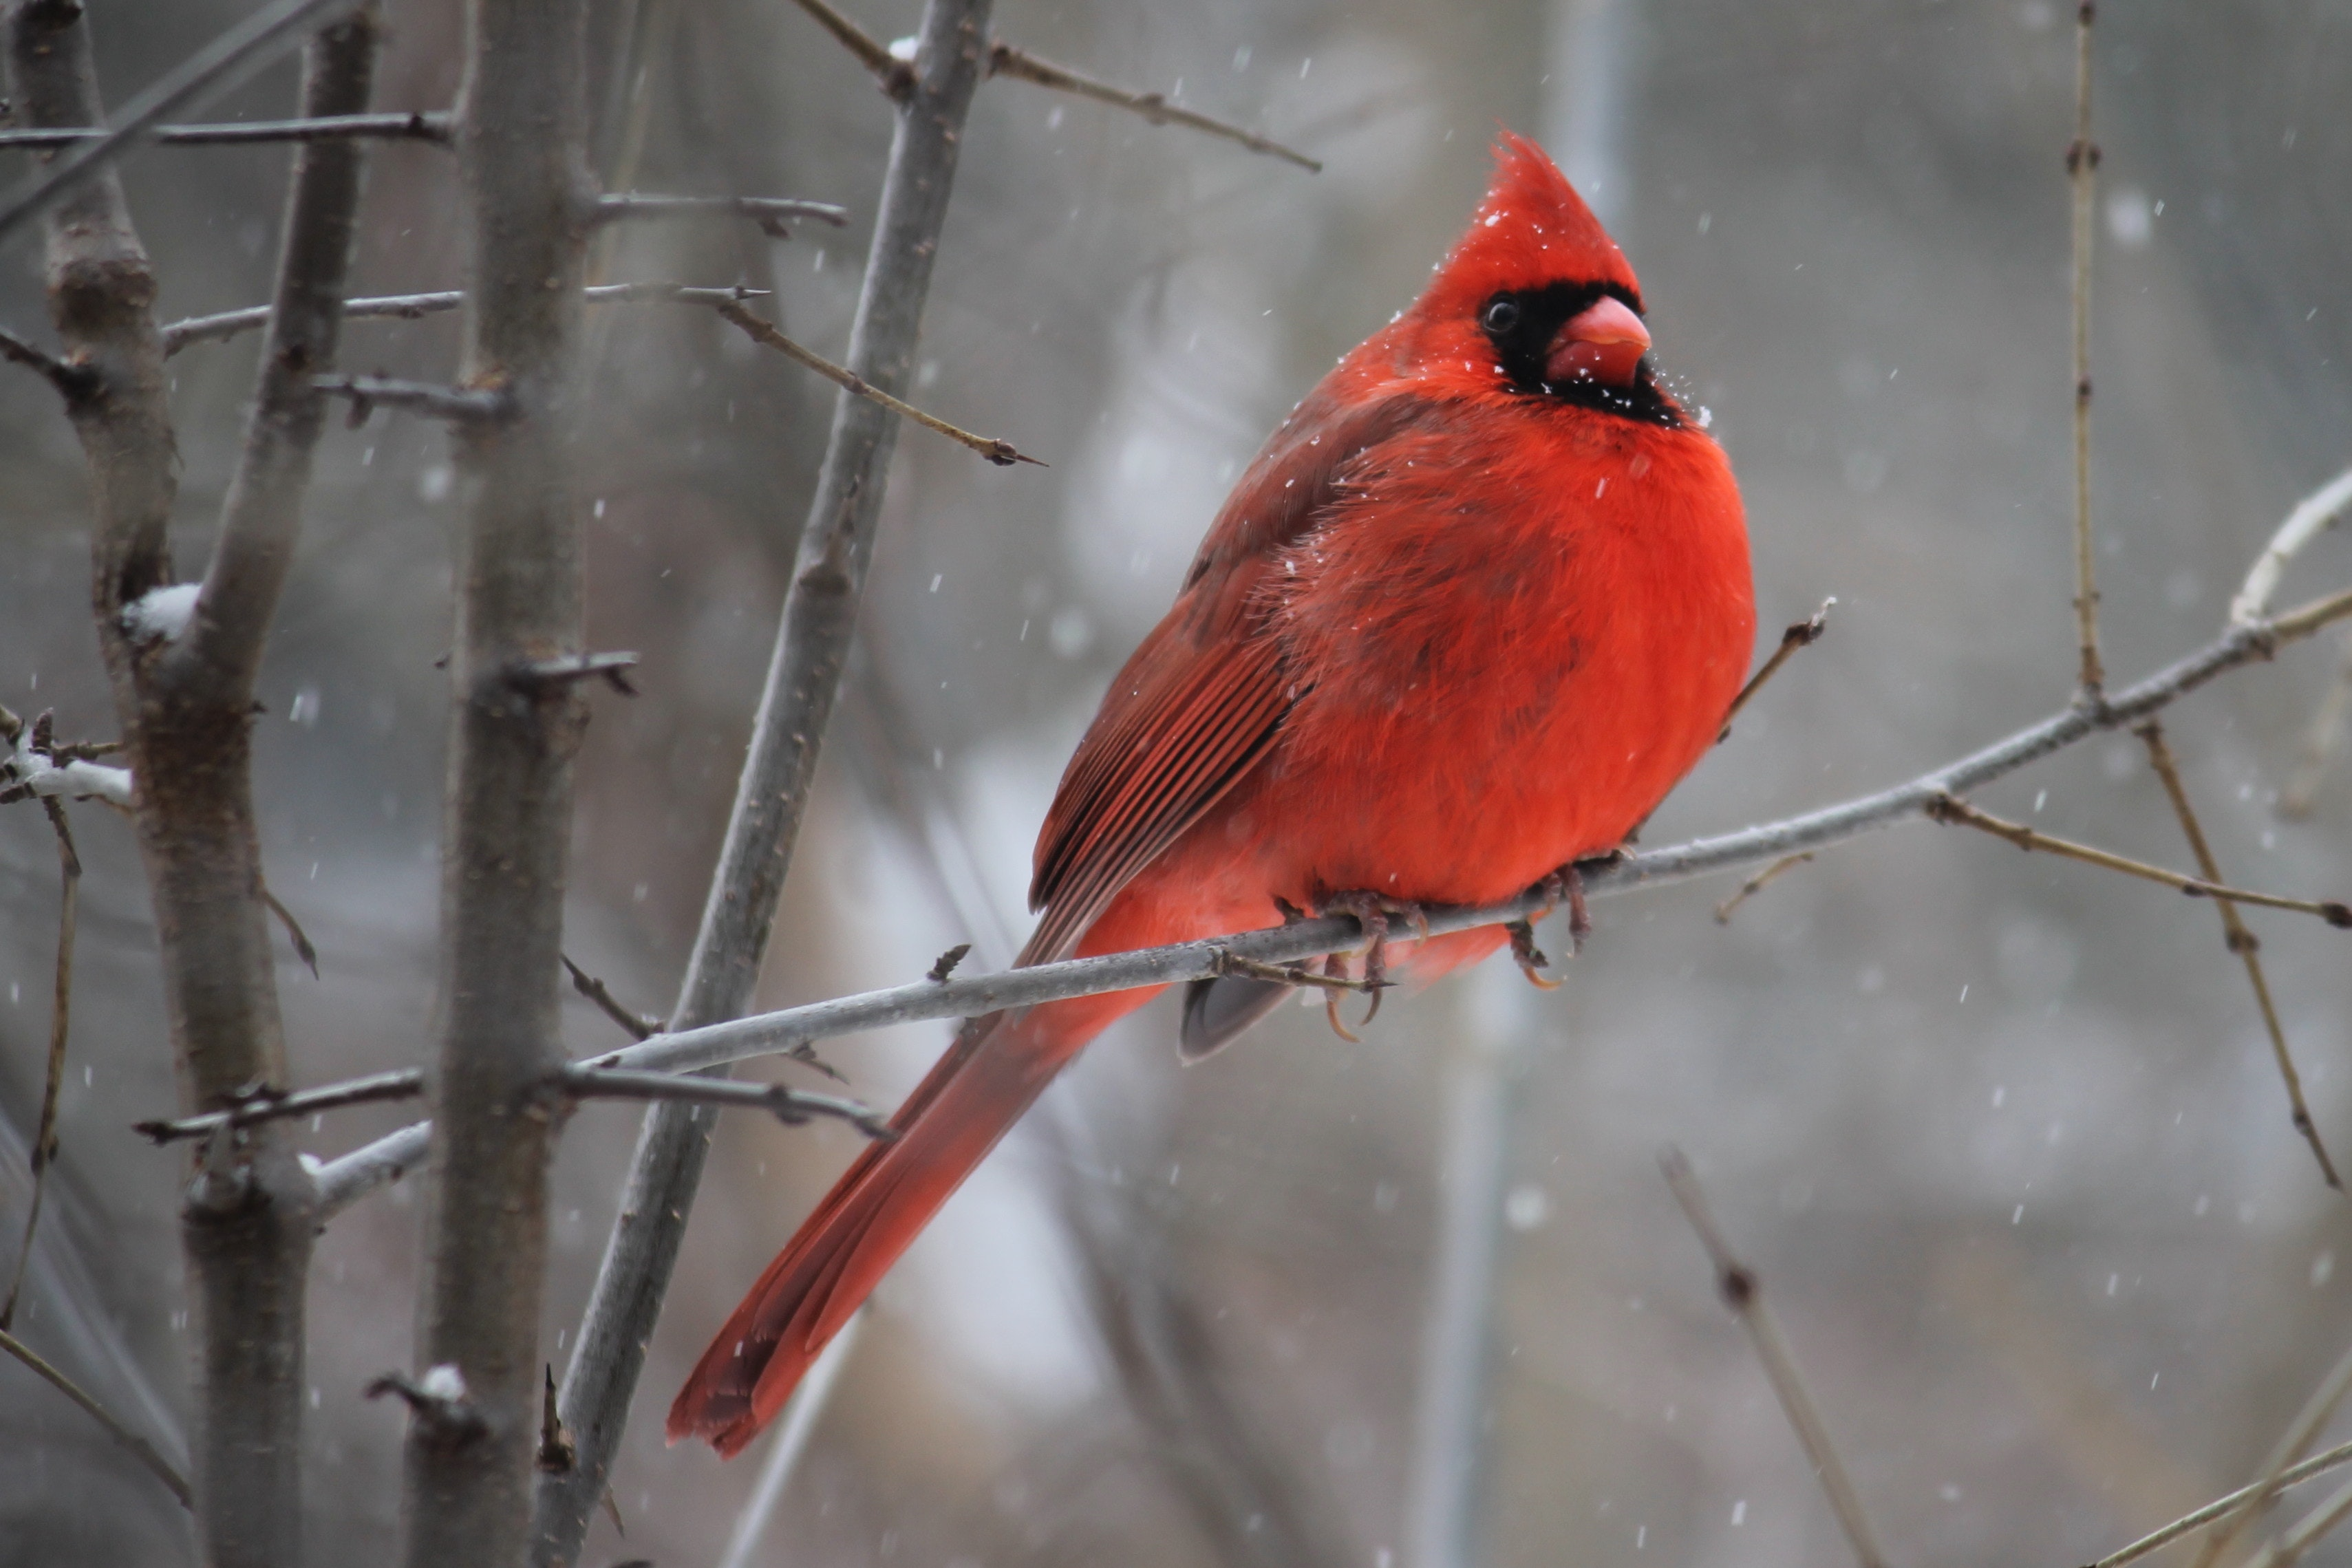 Red Cardinal Bird on Tree Branch, Animal, Outdoors, Winter, Wings, HQ Photo